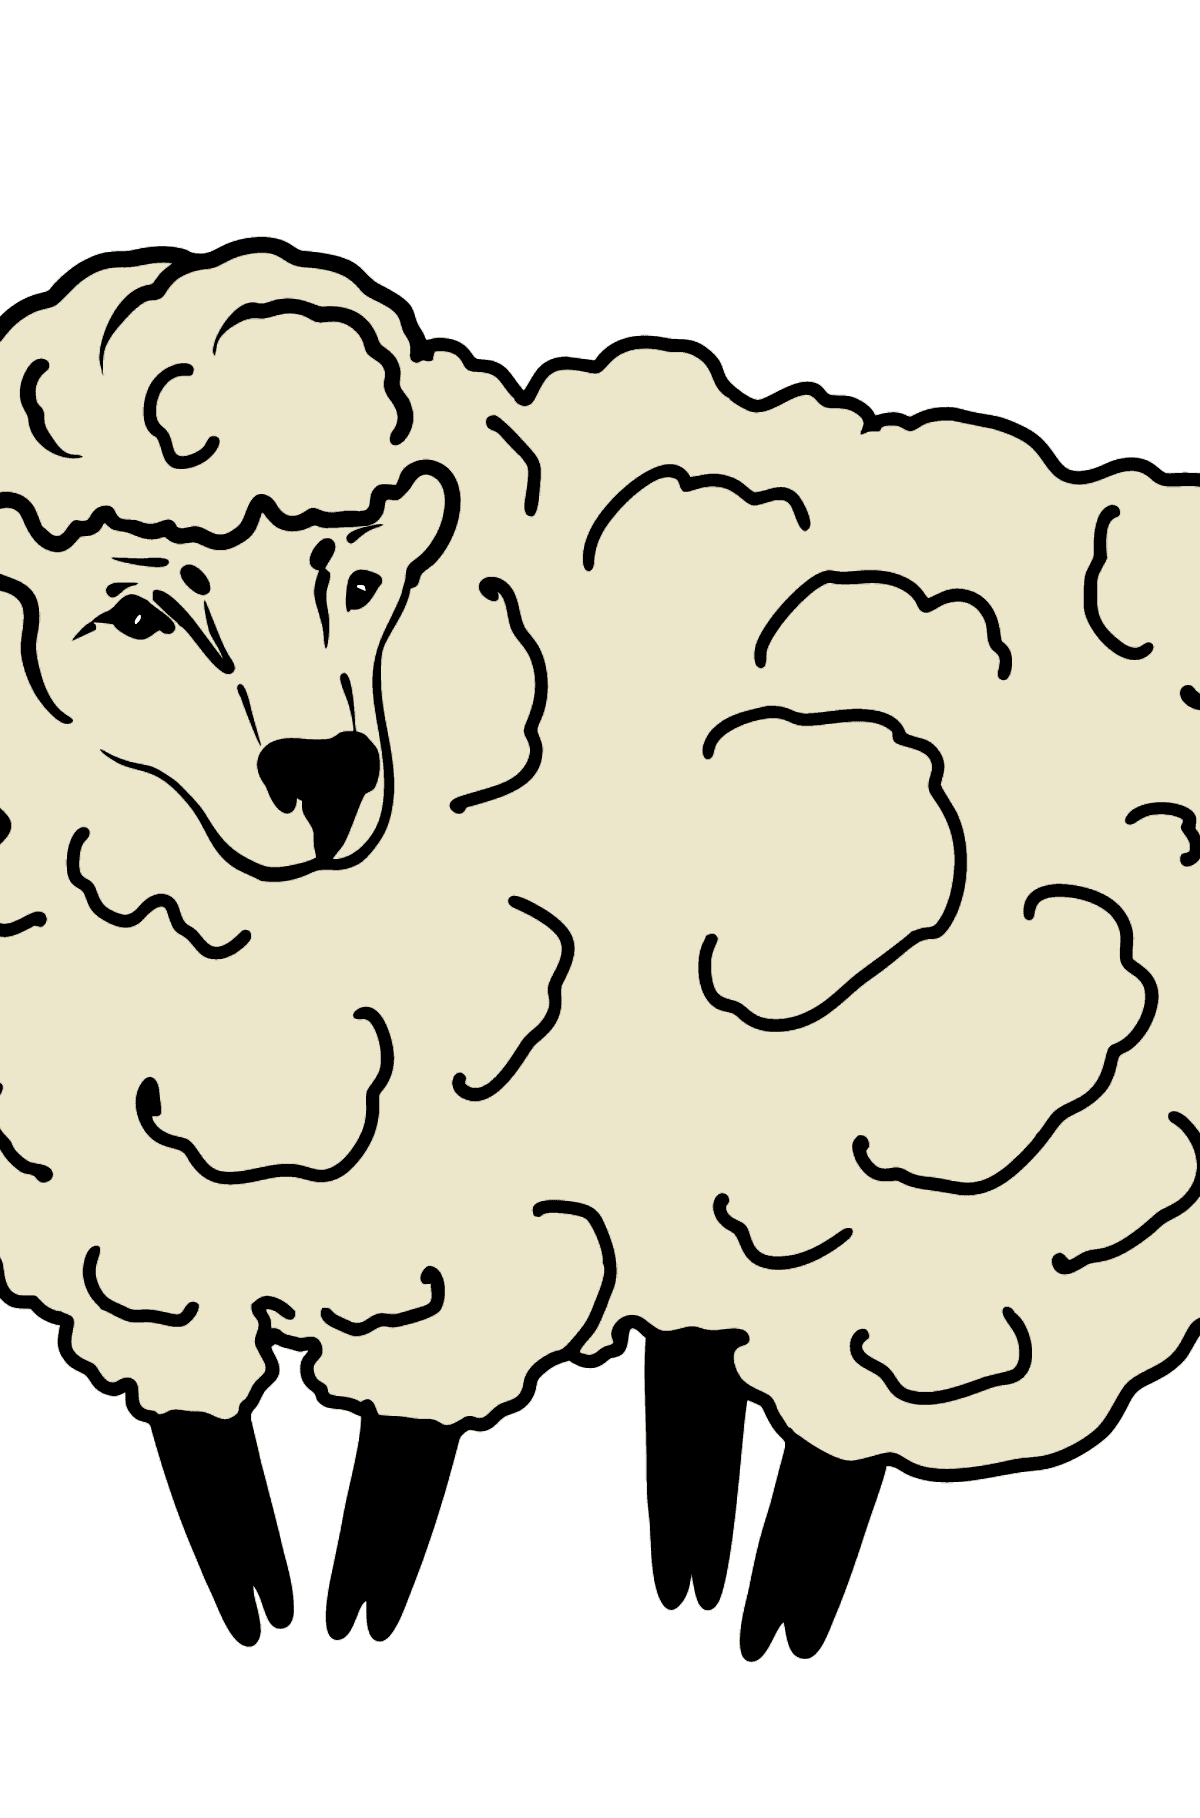 Sheep coloring page - Coloring Pages for Kids